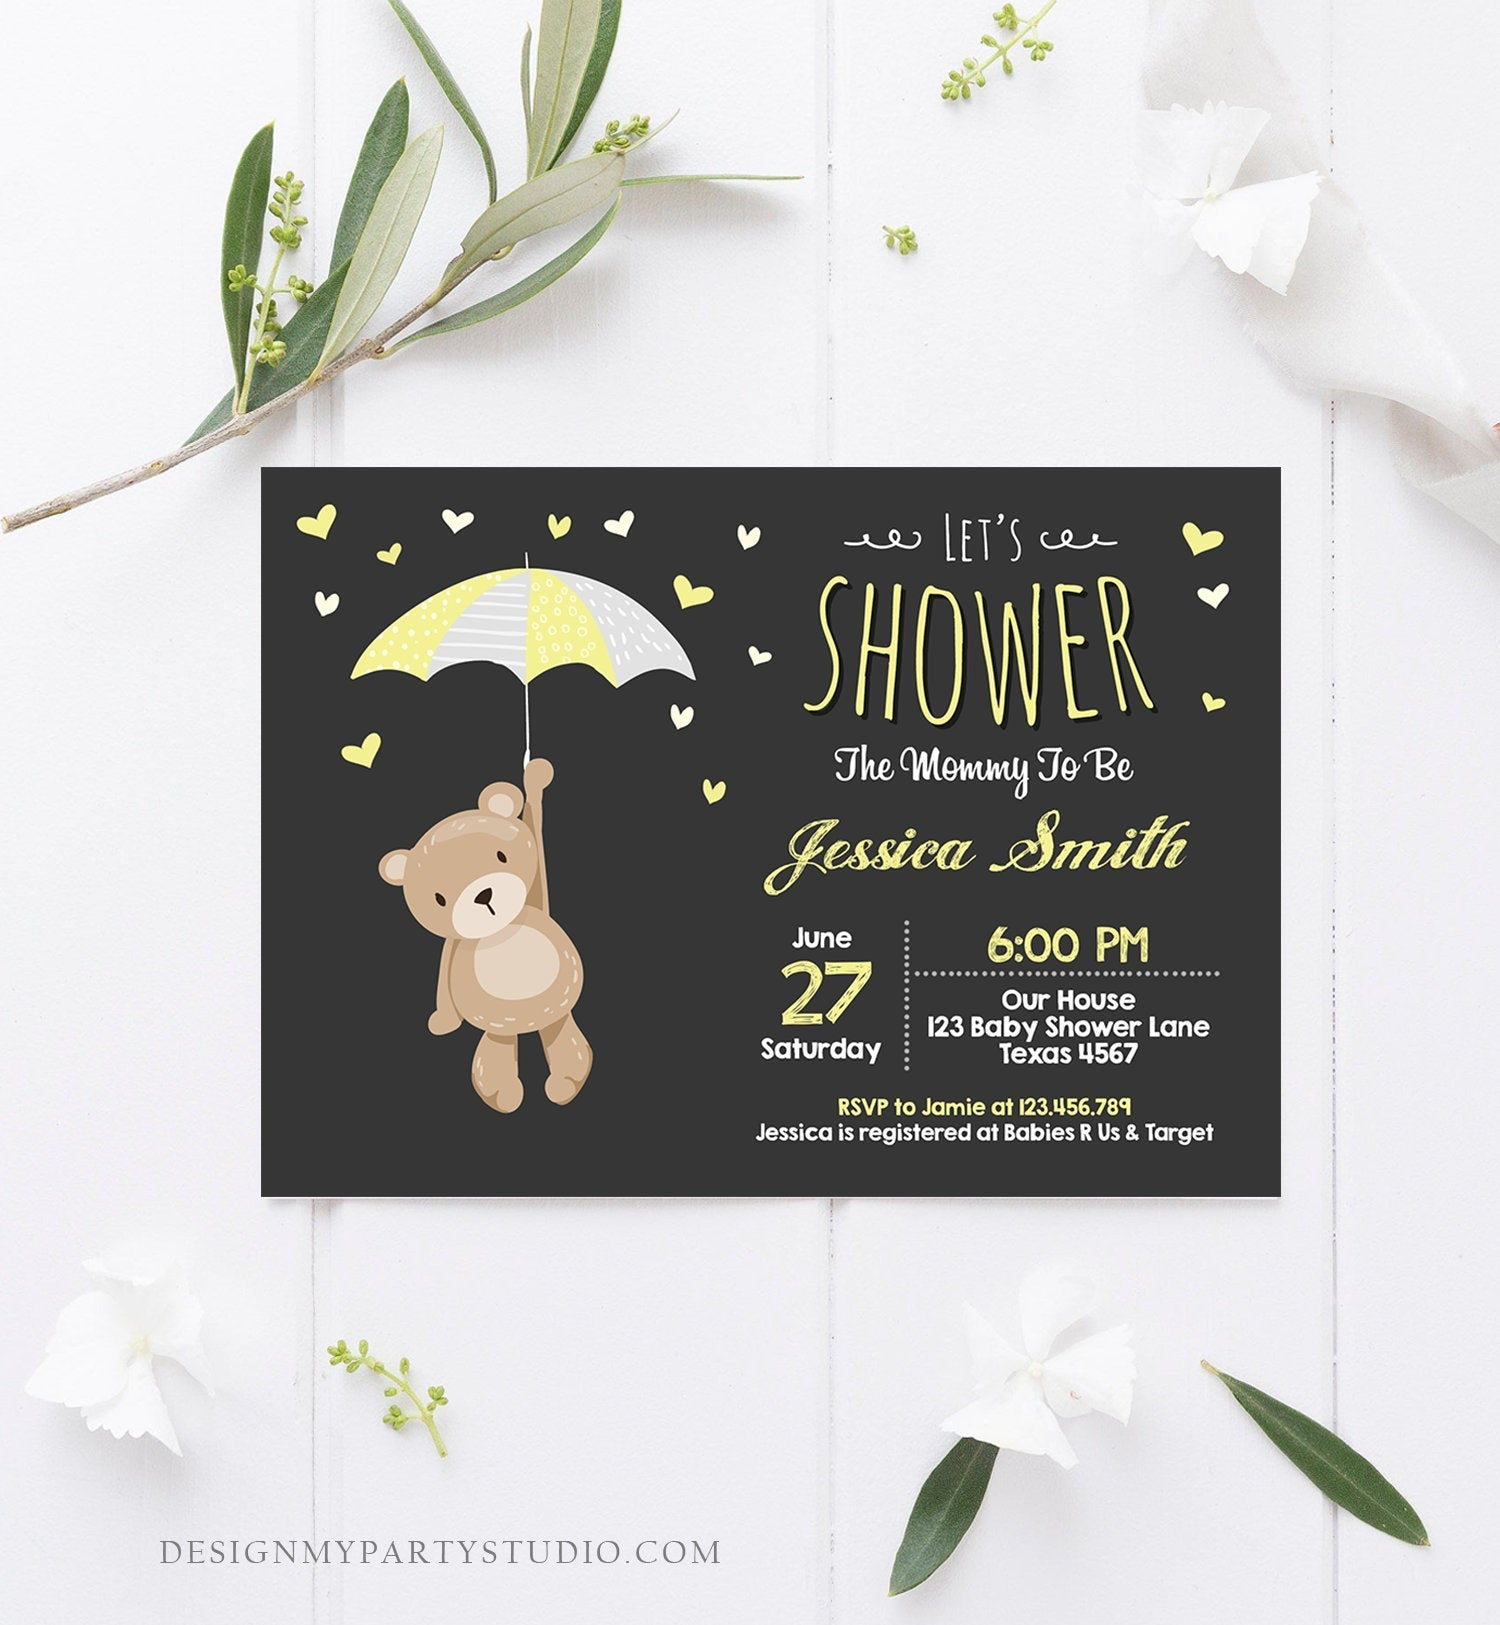 Editable Baby Shower Invitation Teddy Bear Cute Gender Neutral Bear Little Cub Woodland Invitation Template Instant Download Corjl 0025